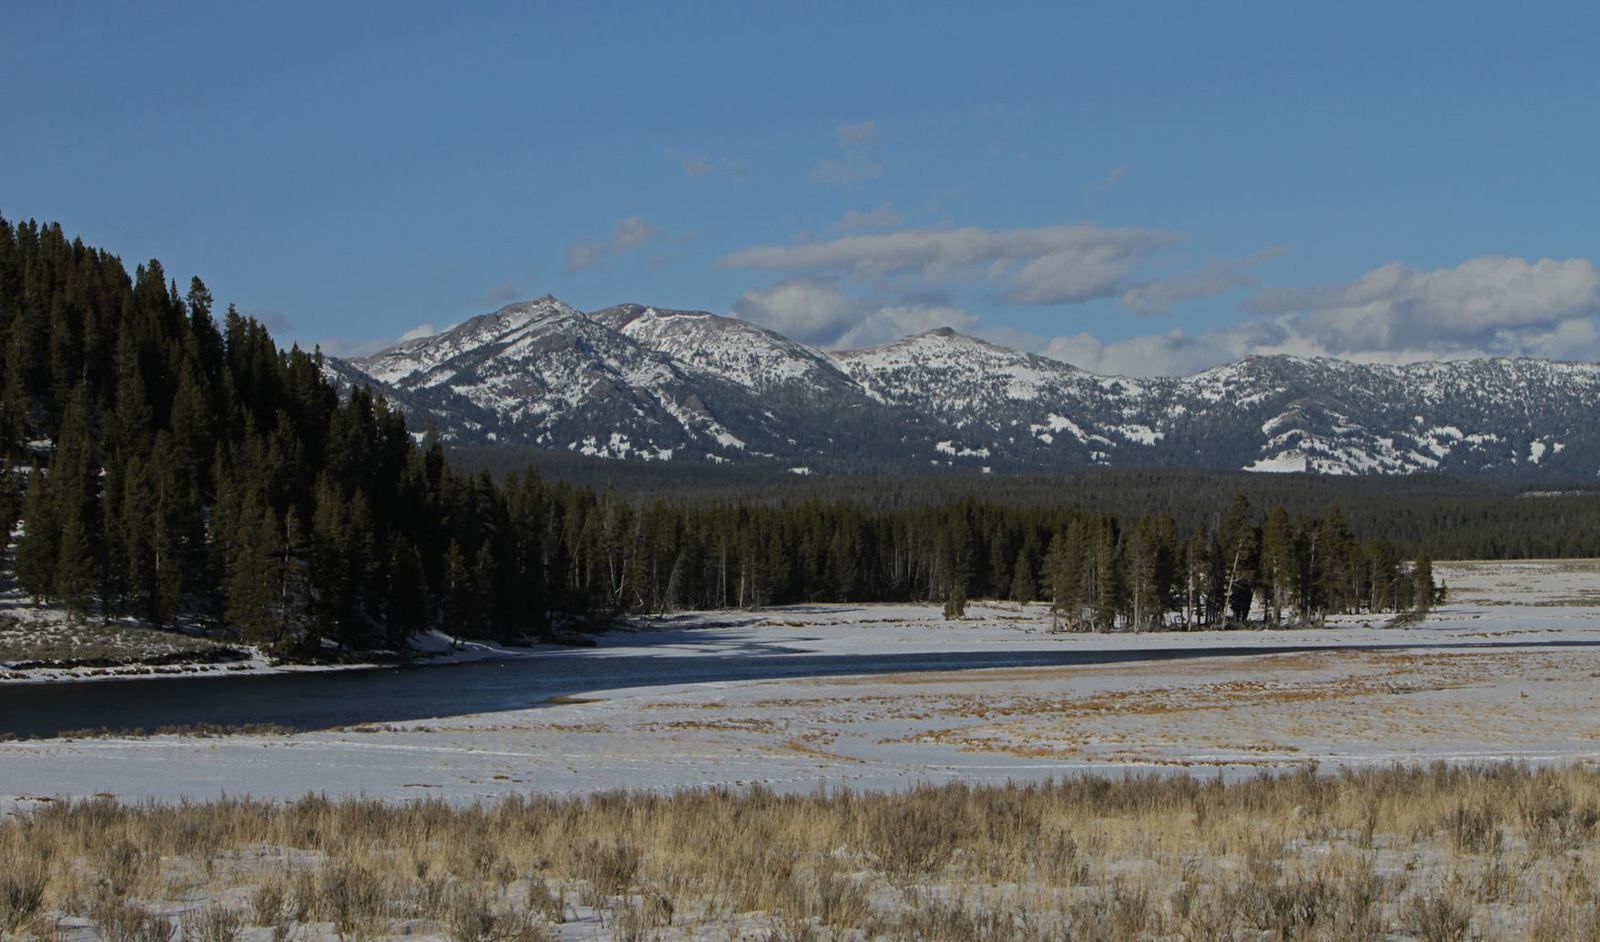 Le Washburn Range ,vu depuis Hayden Valley -  photo Yellowstone National Park 2014